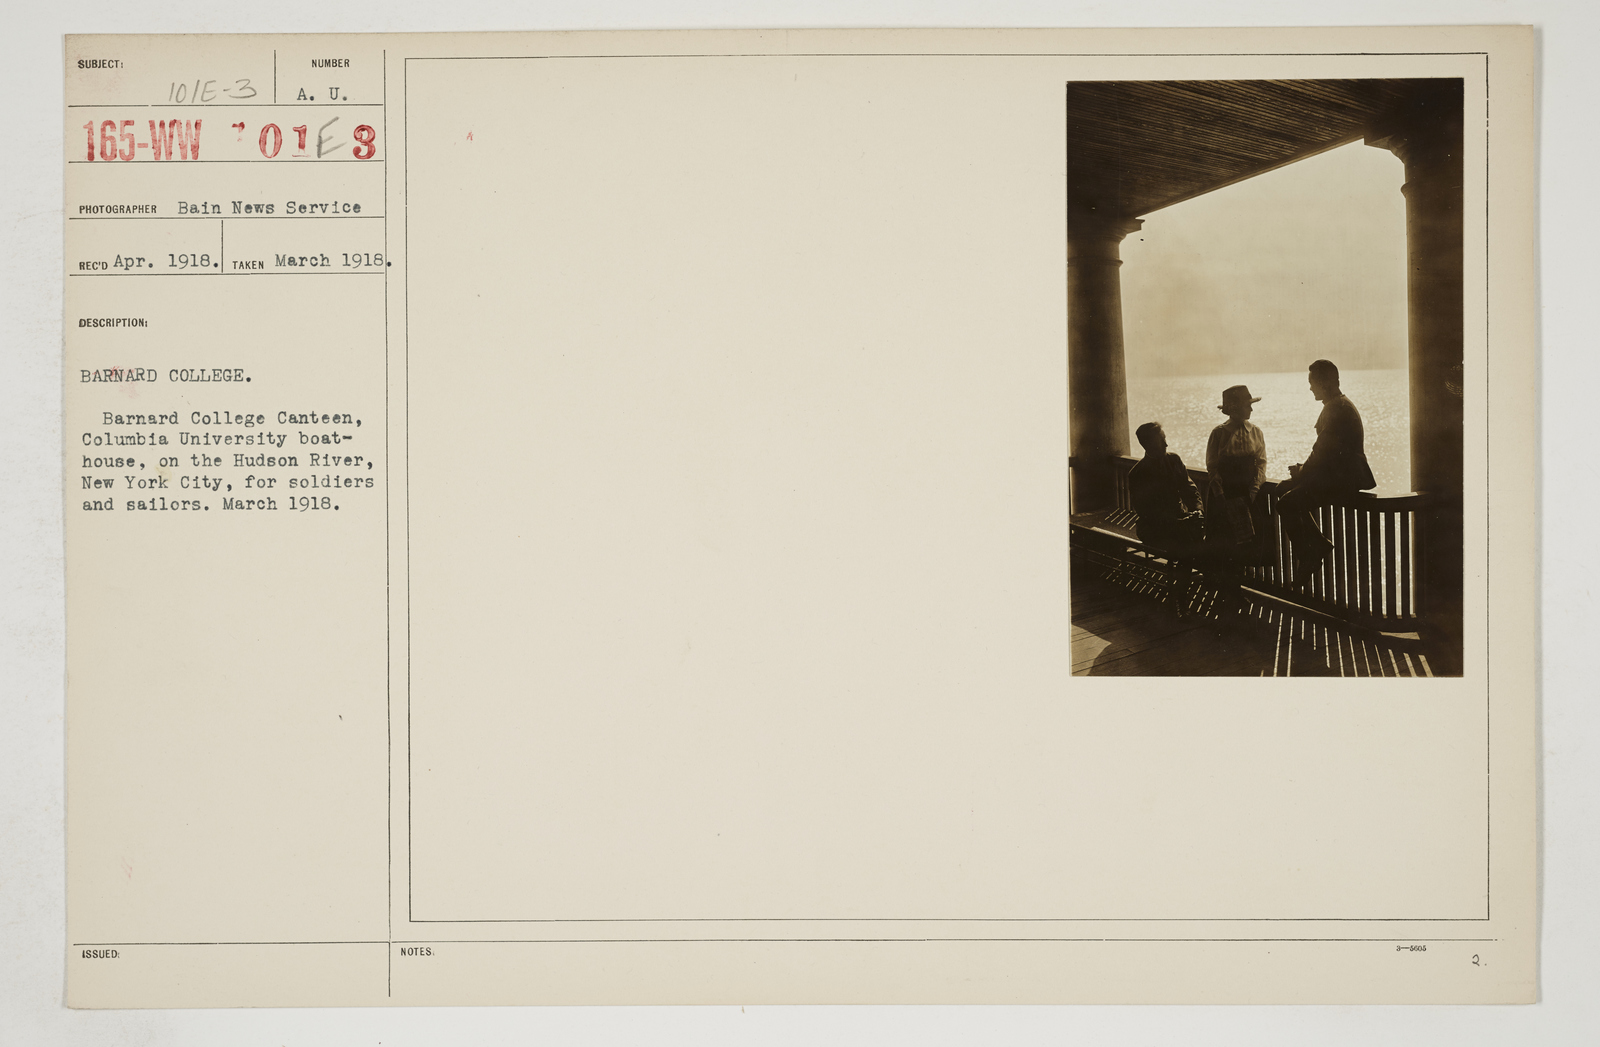 Colleges and Universities - Barnard College - Barnard College.  Barnard College Canteen, Columbia University Boathouse, on the Hudson River, New York City, for soldiers and sailors.  March 1918